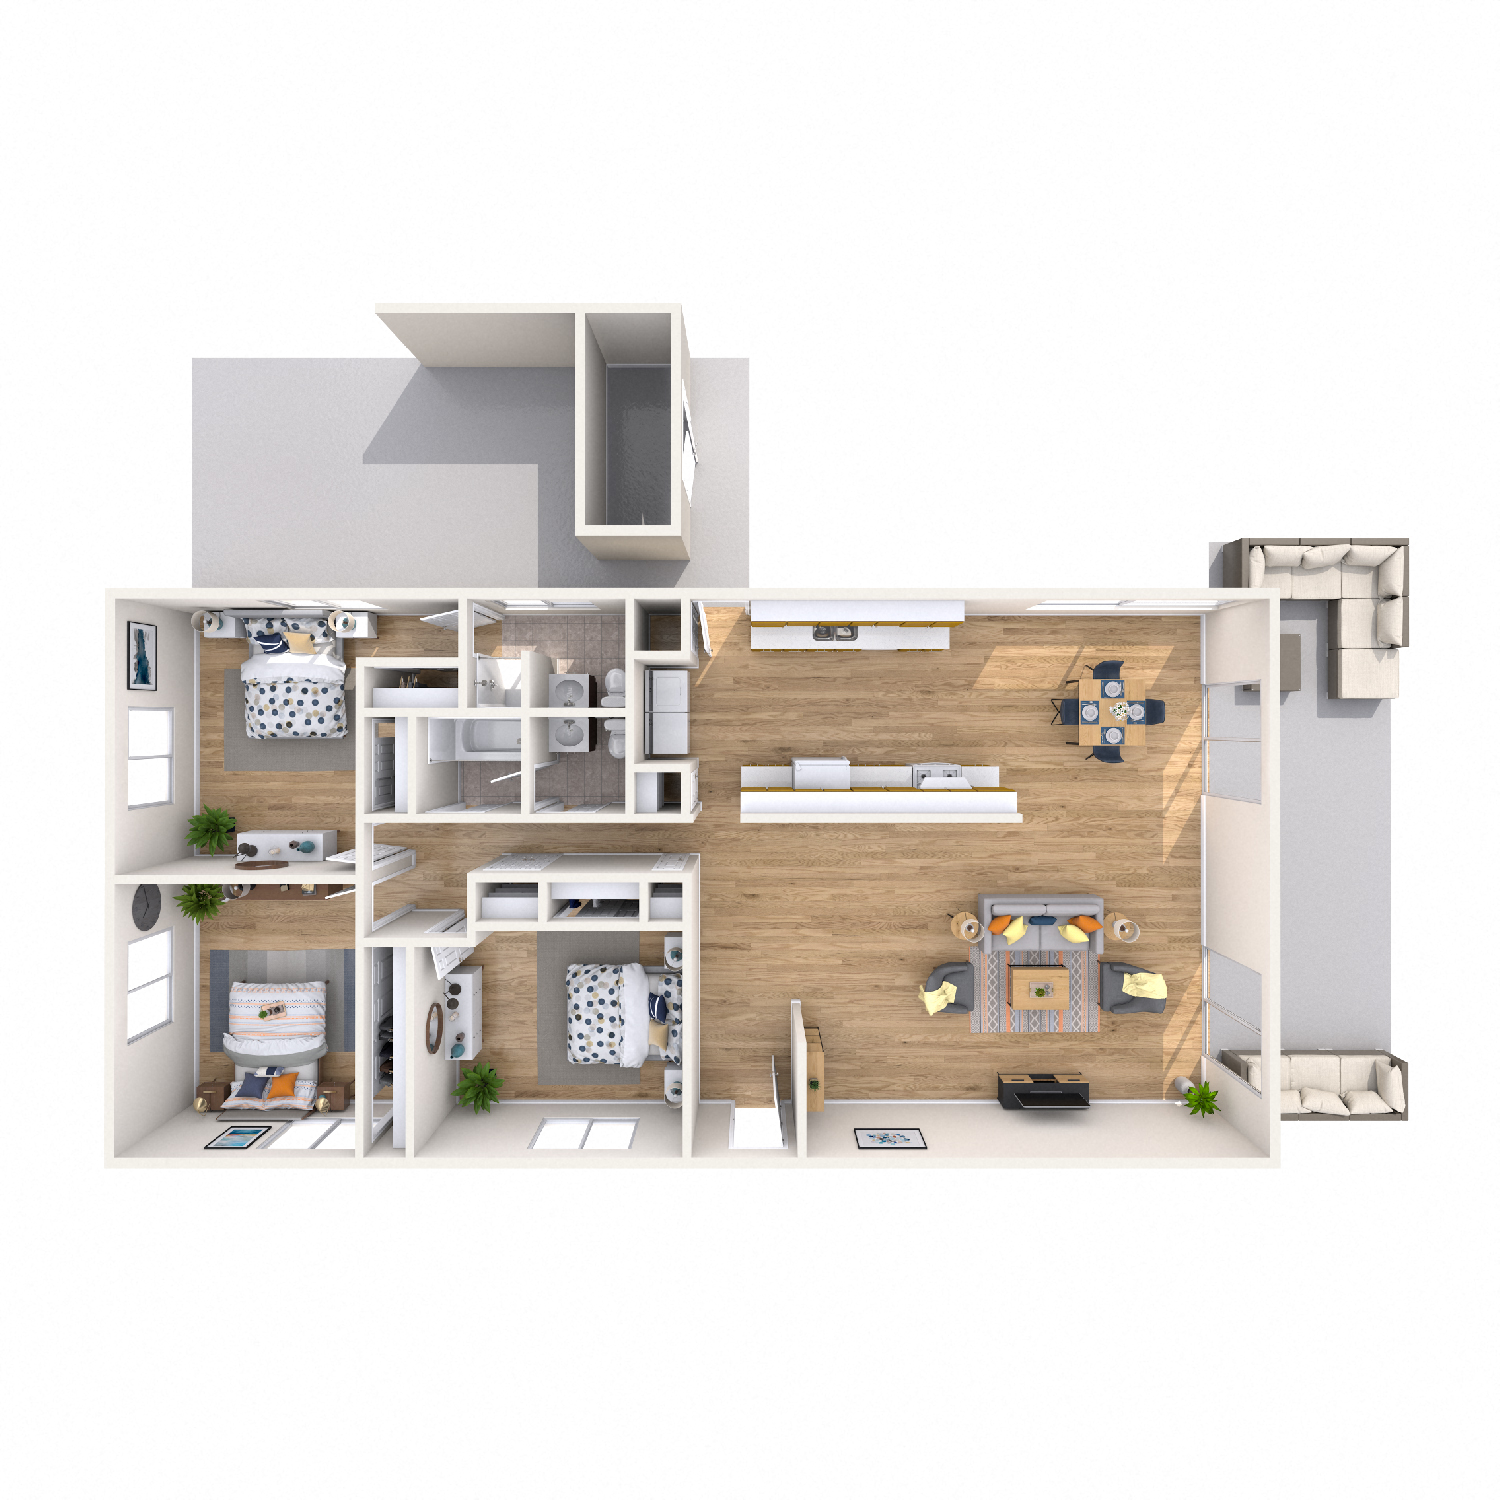 Ilima diagram - 3 bed 2 bath kapolei apt floorplan